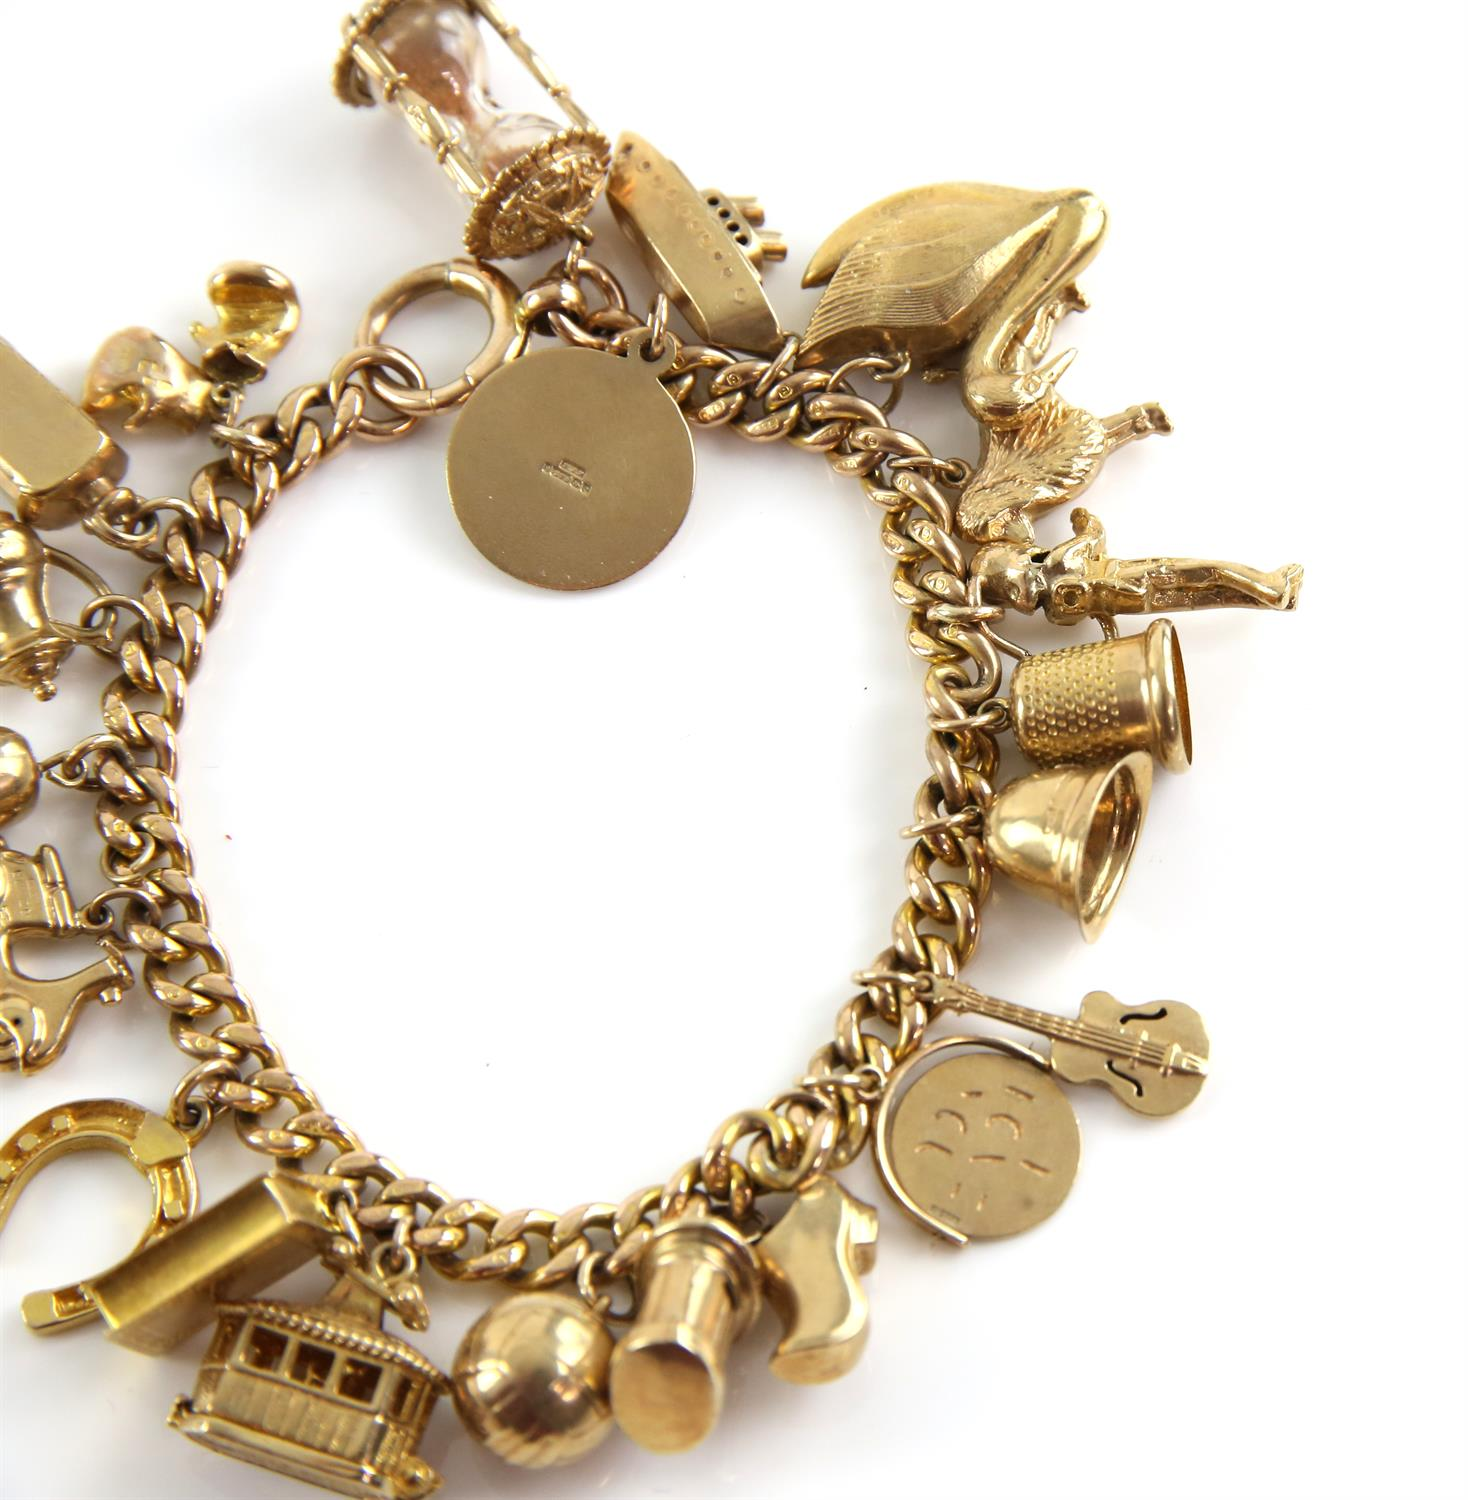 Gold curb link bracelet, large bolt ring clasp, with twenty-one vintage charms attached, - Image 2 of 3